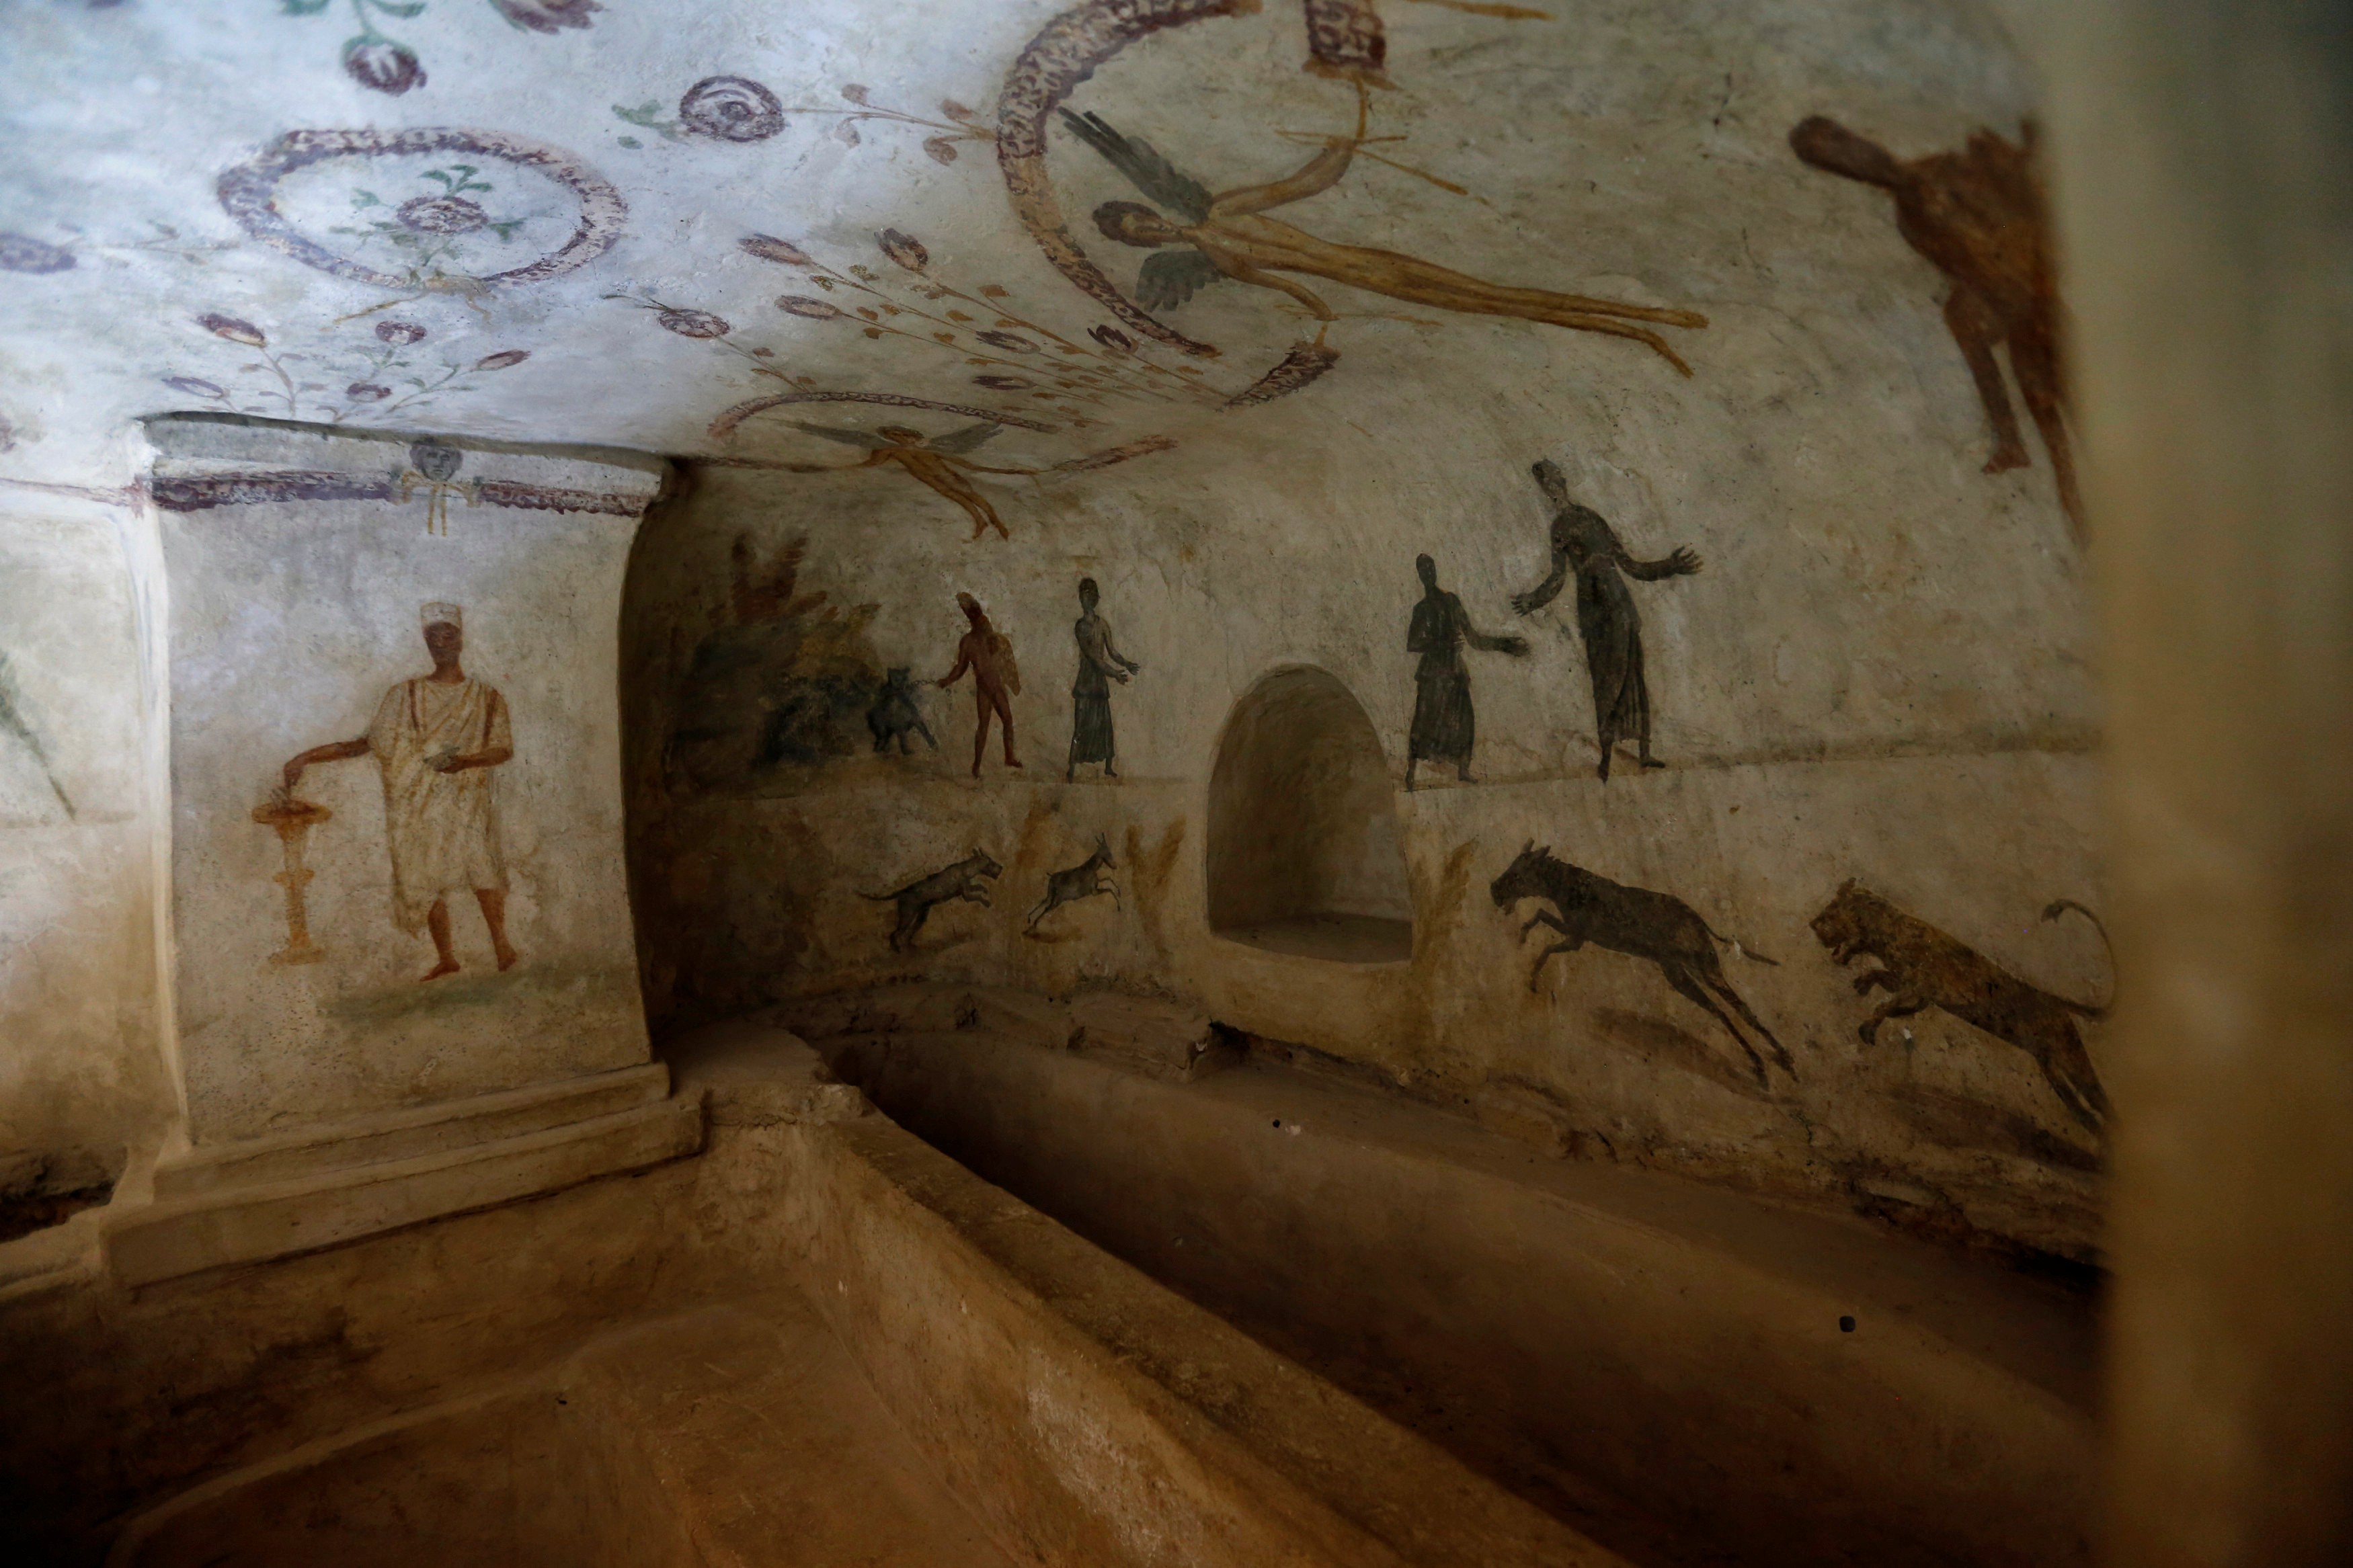 Drawings representing the funerary rituals are seen at Ancient Roman graves date back to the Roman period in Tripoli, Libya, Oct. 18, 2018.